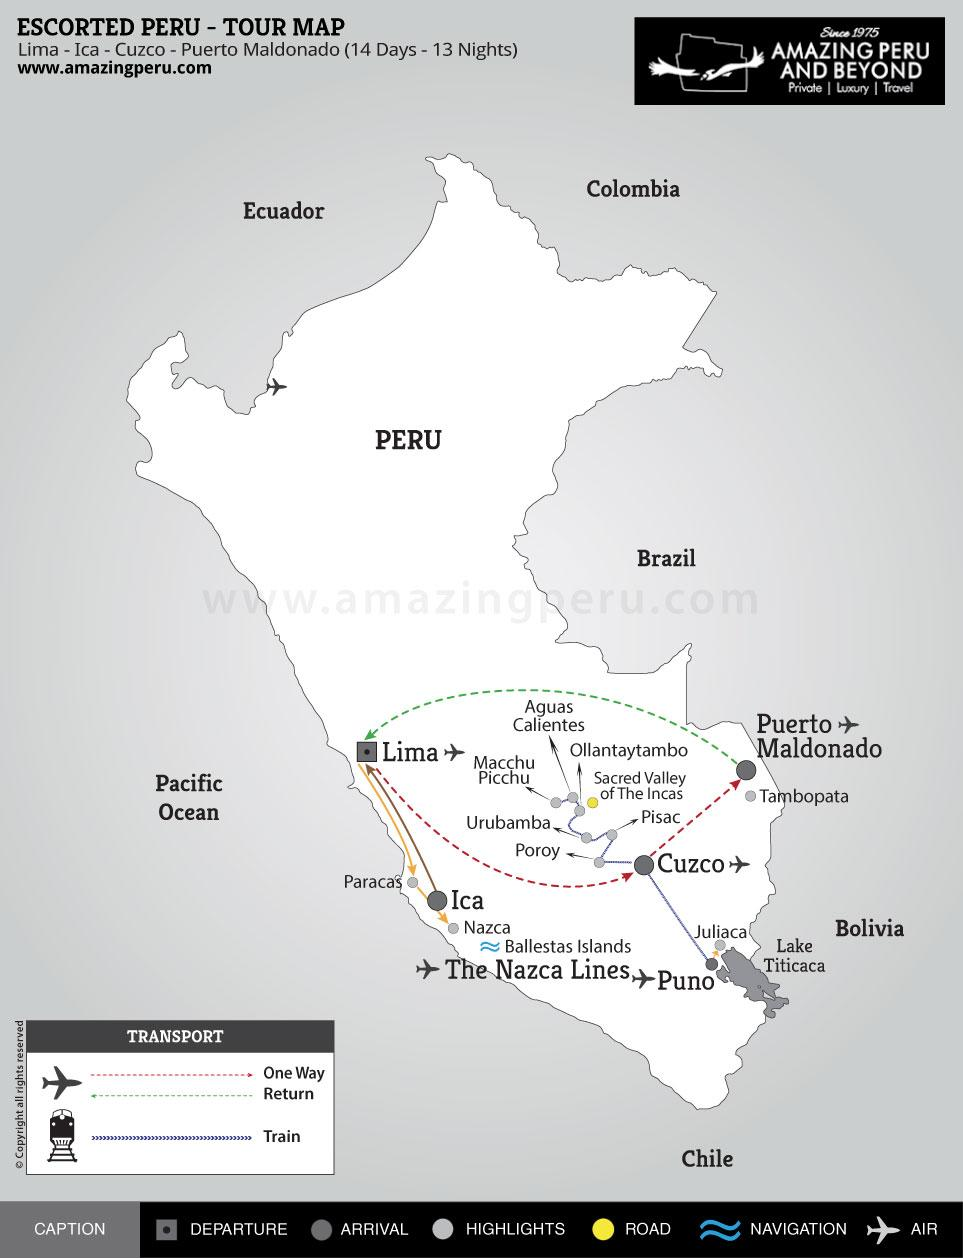 Escorted Peru Tour 4 - 14 days / 13 nights.